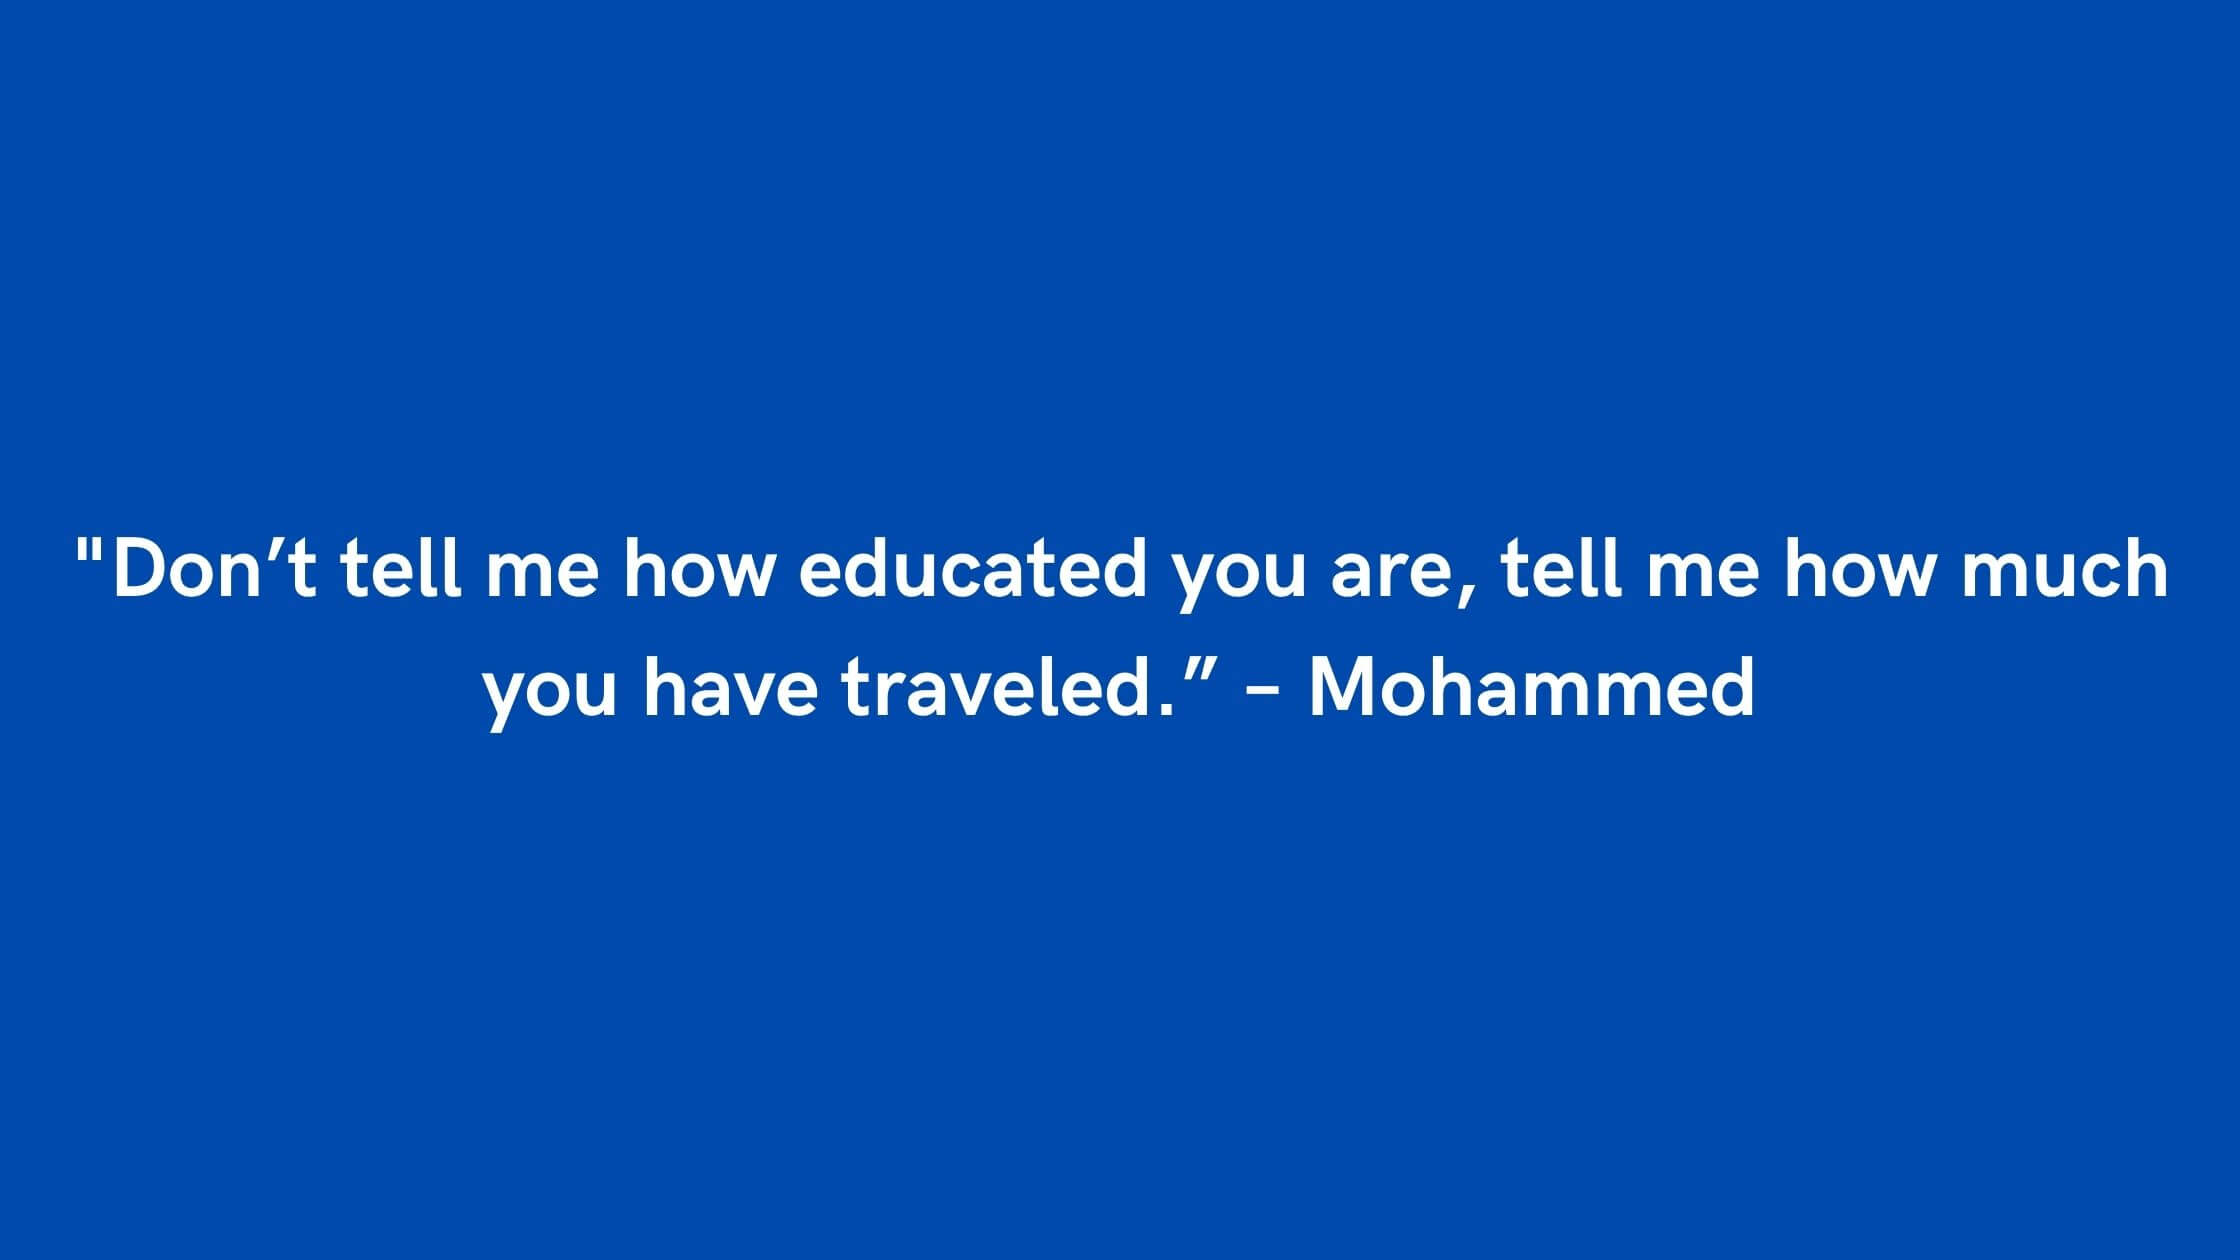 """_Don't tell me how educated you are, tell me how much you have traveled."""" – Mohammed"""